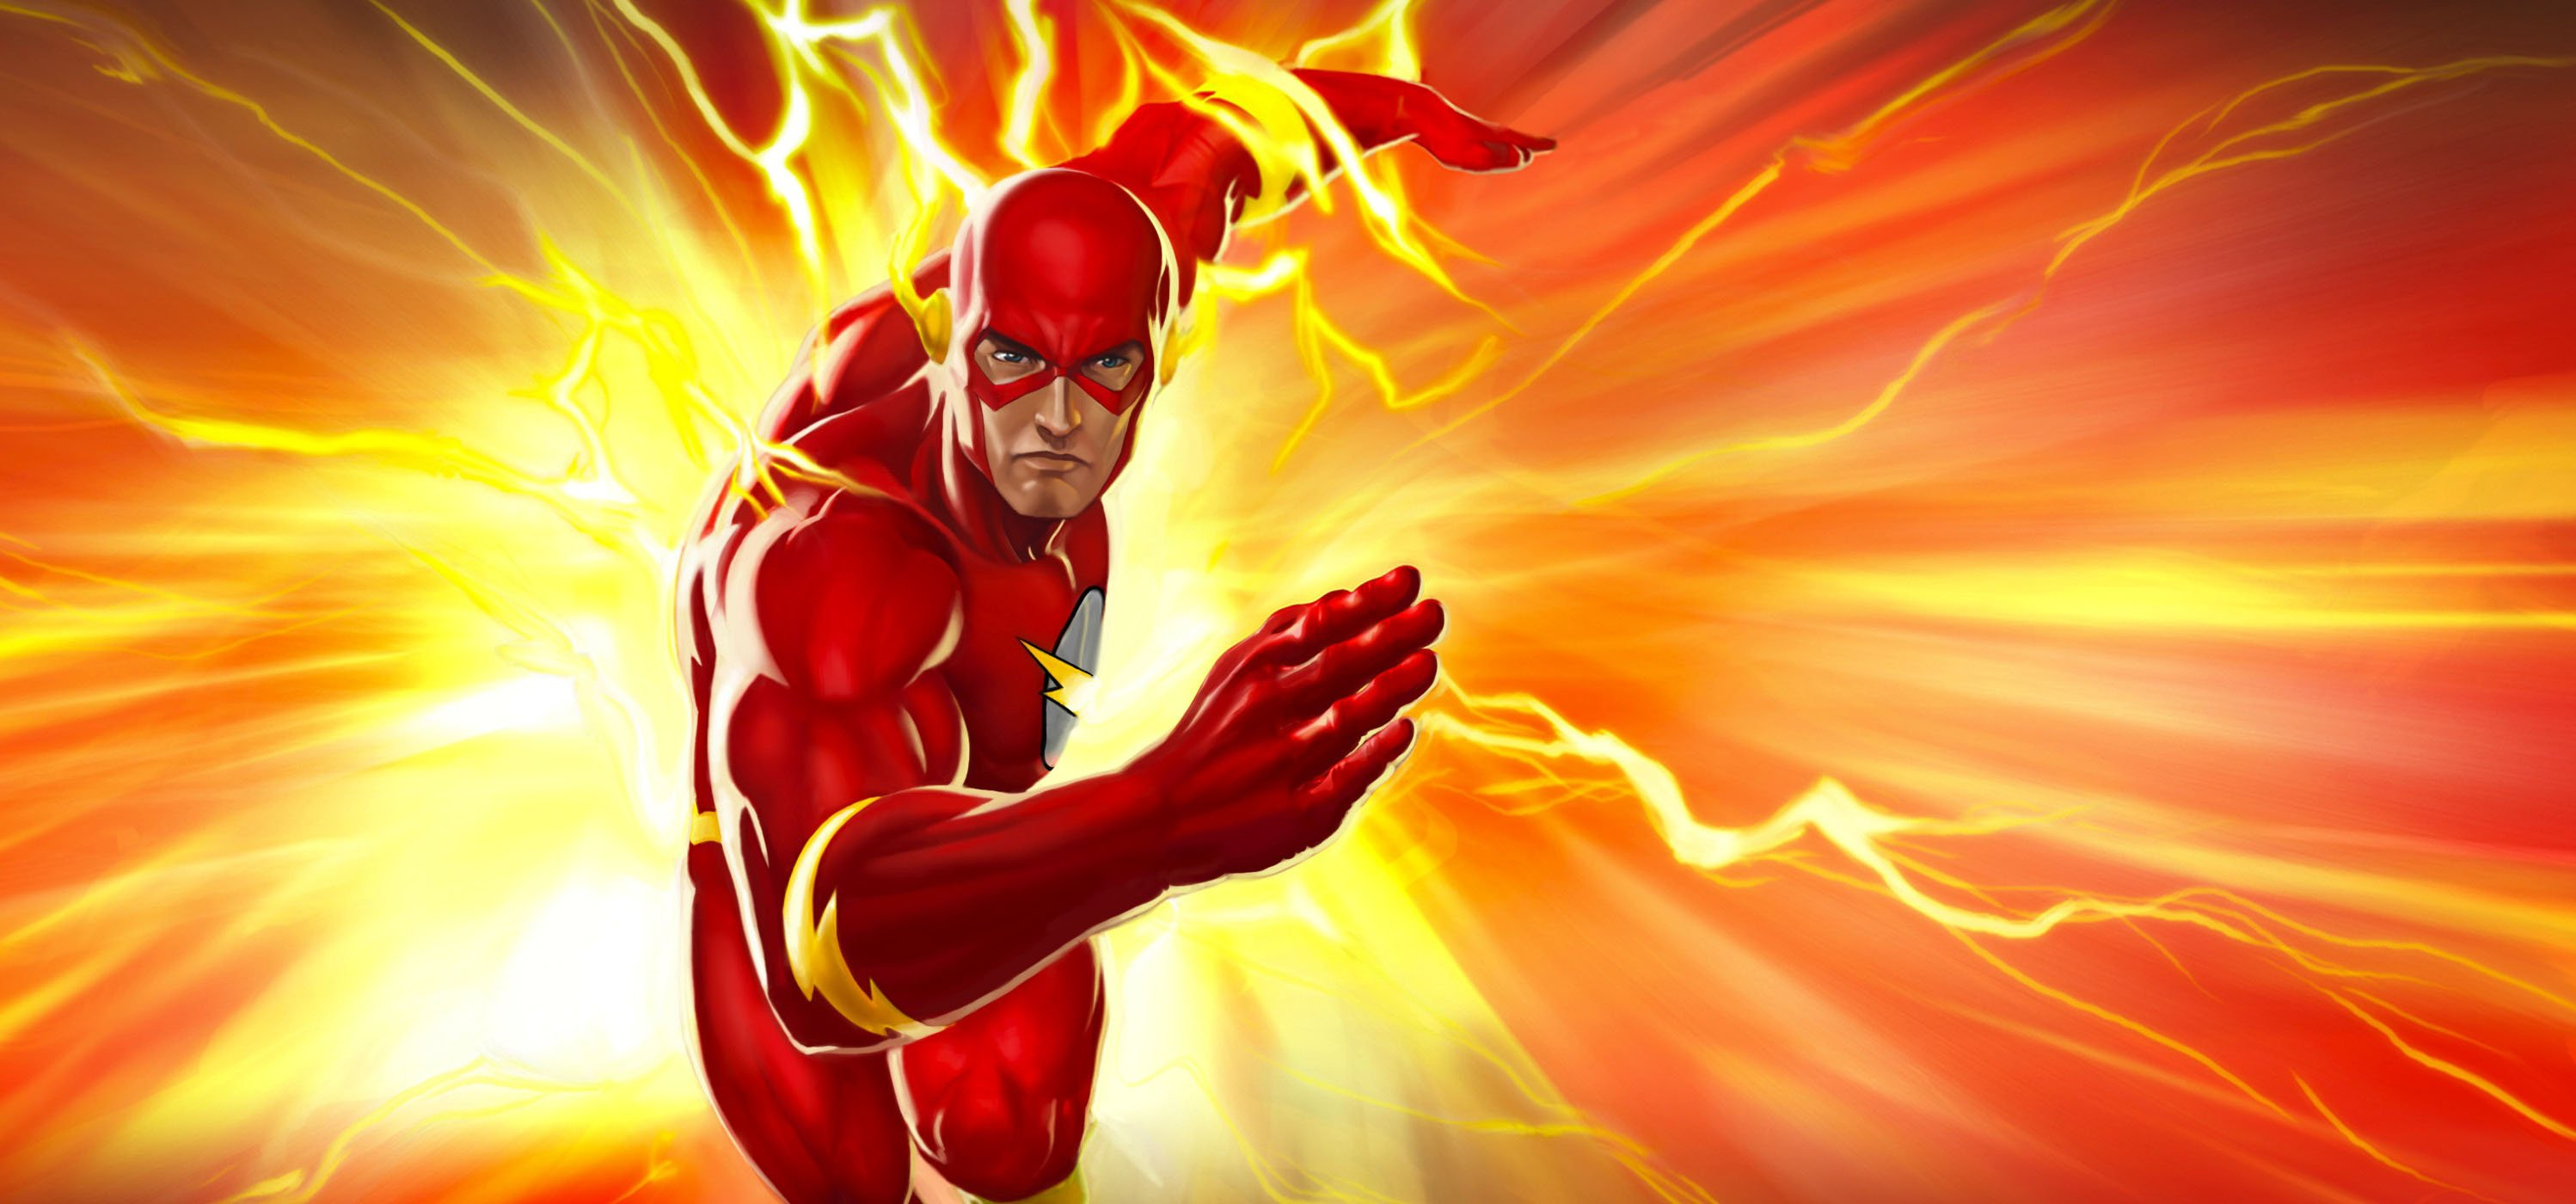 Images of Flash Superhero Wallpaper Word Art - #SC